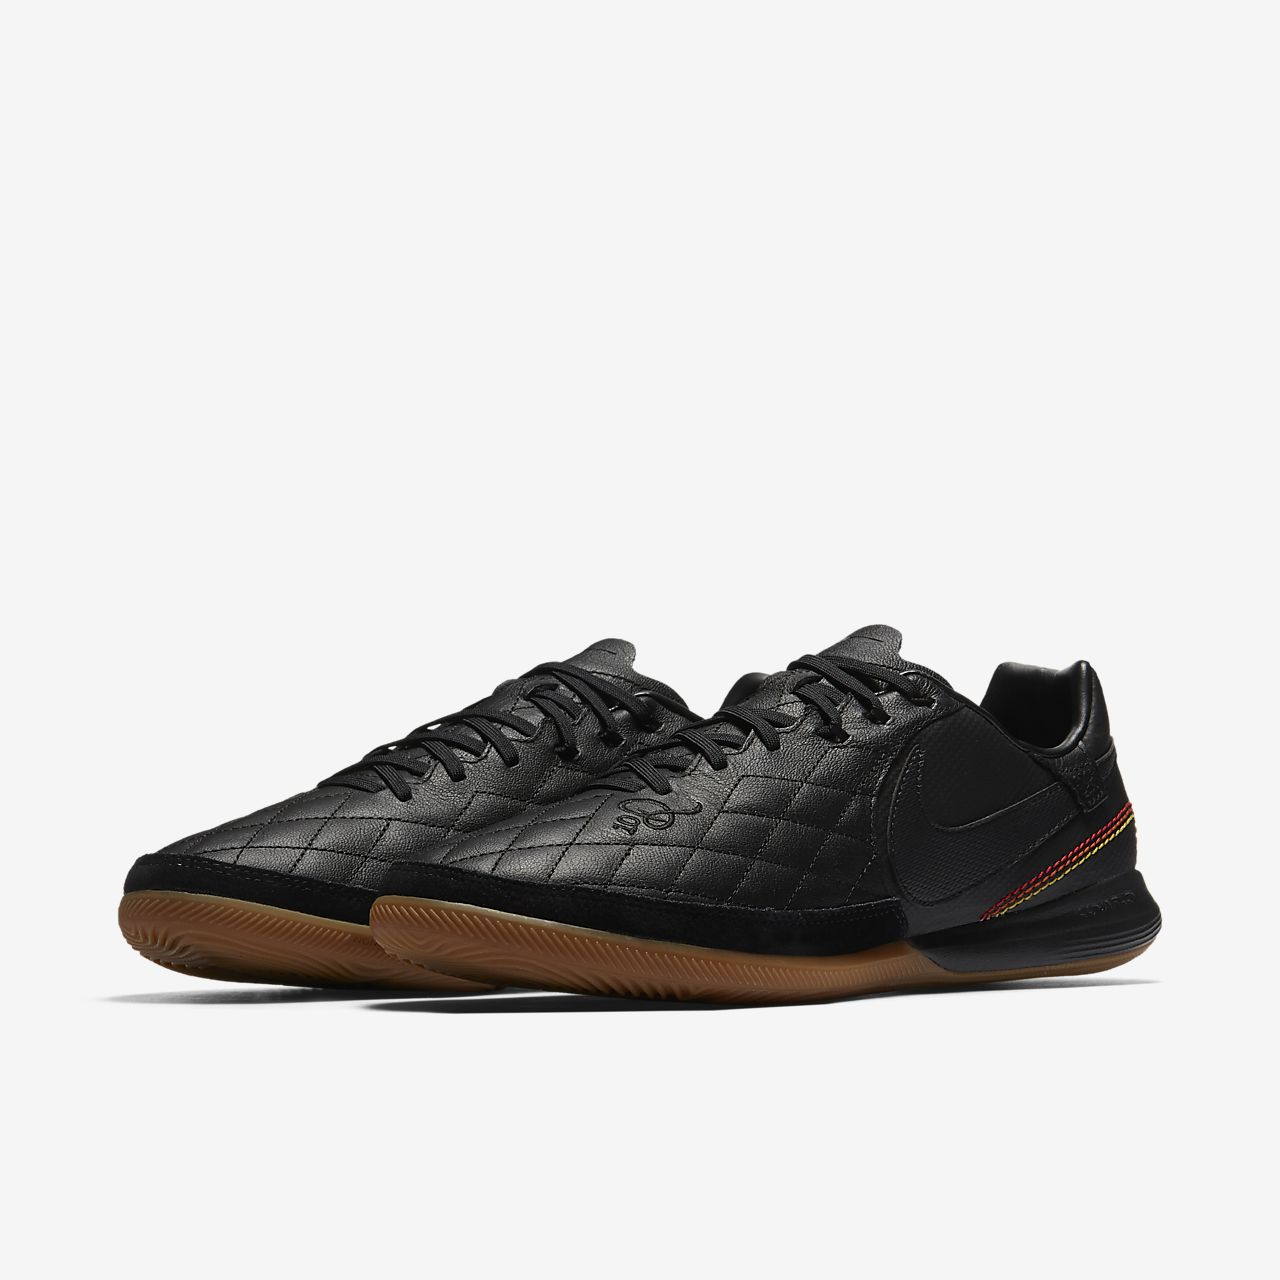 ... Nike TiempoX Finale 10R IC Indoor/Court Football Shoe